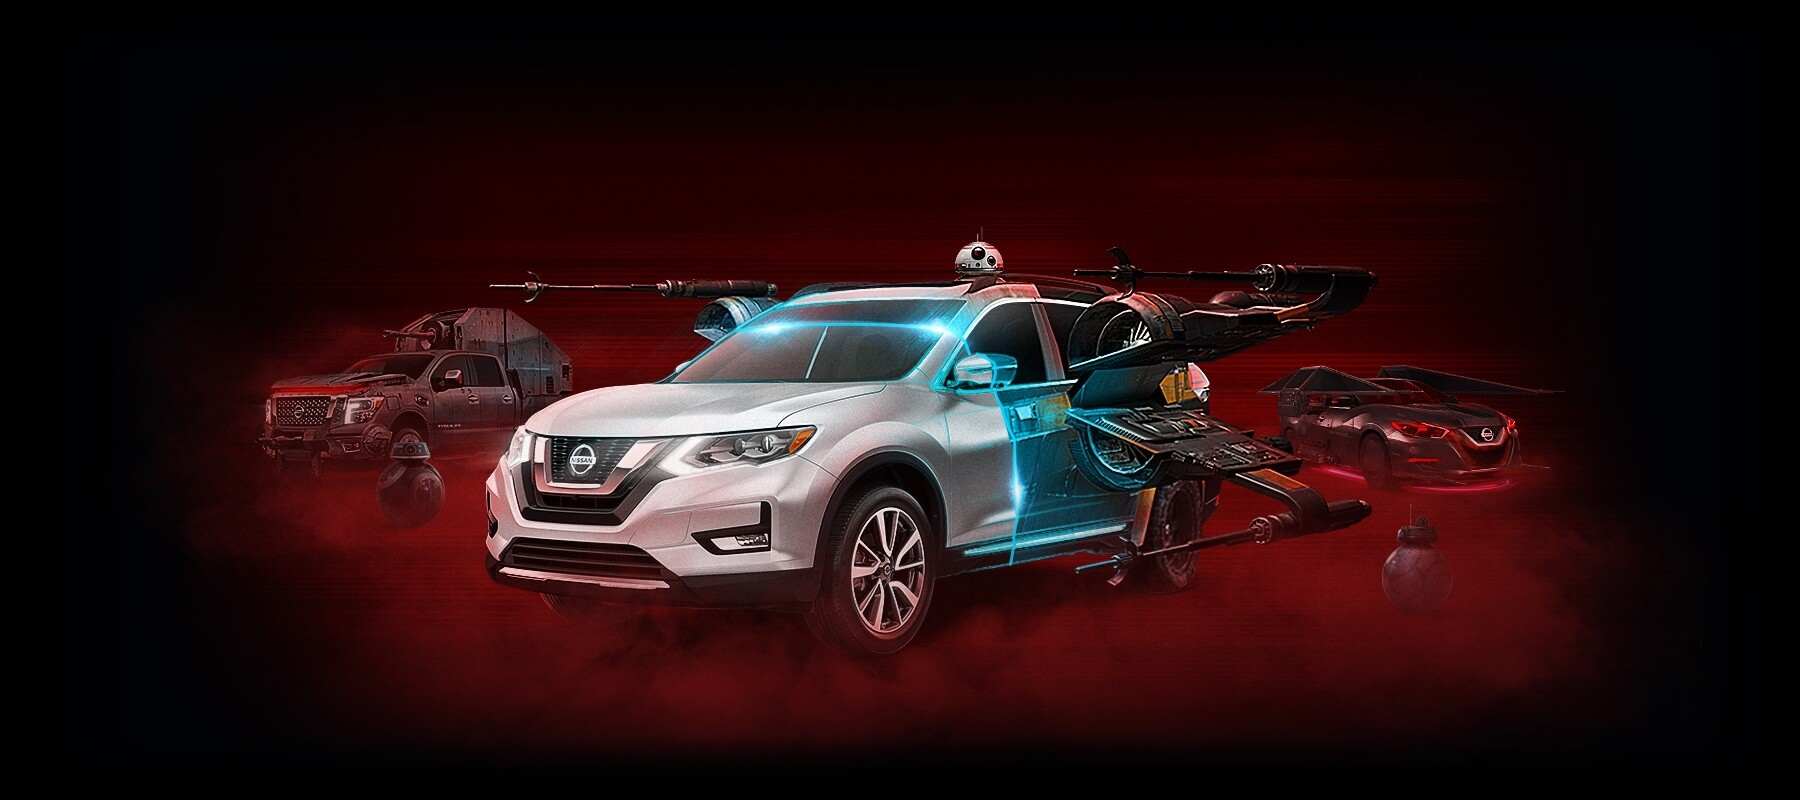 """Virtual Car Customizer >> Sweepstakes: Win a custom """"Star Wars"""" car, """"The Last Jedi"""" opening night tickets, and more ..."""